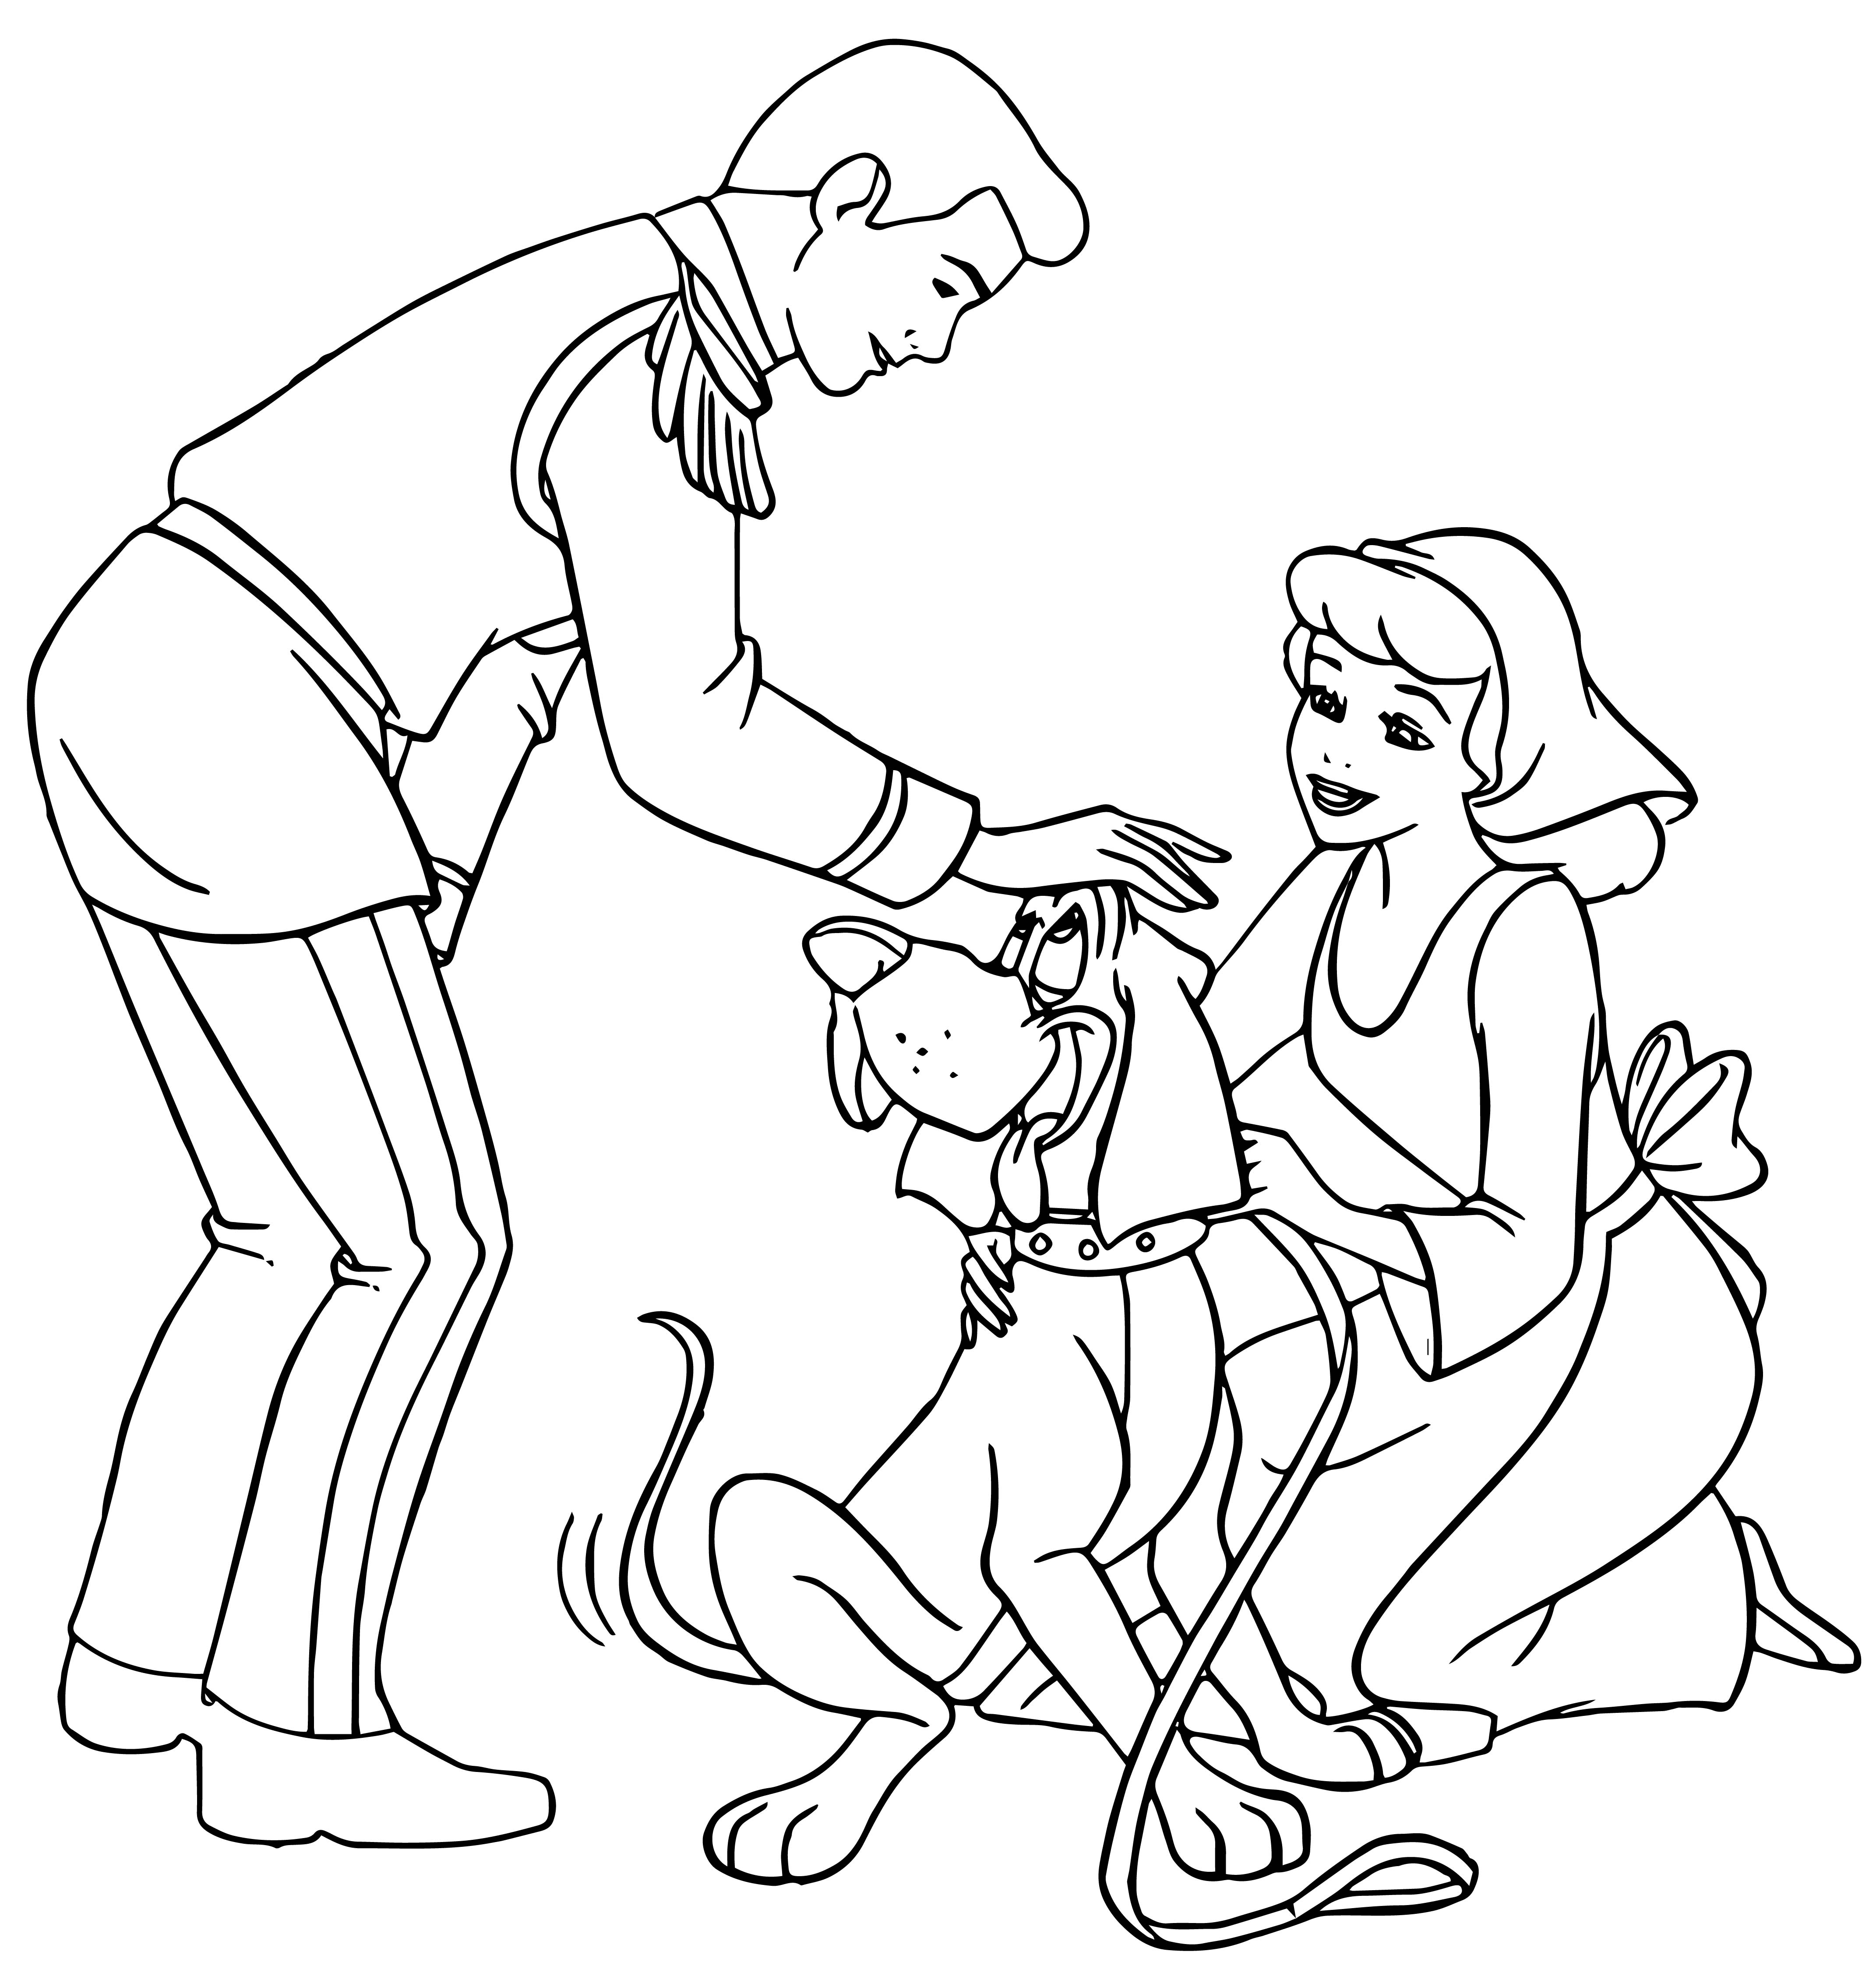 cinderella face coloring pages 126 best images about cinderella on pinterest coloring face cinderella pages